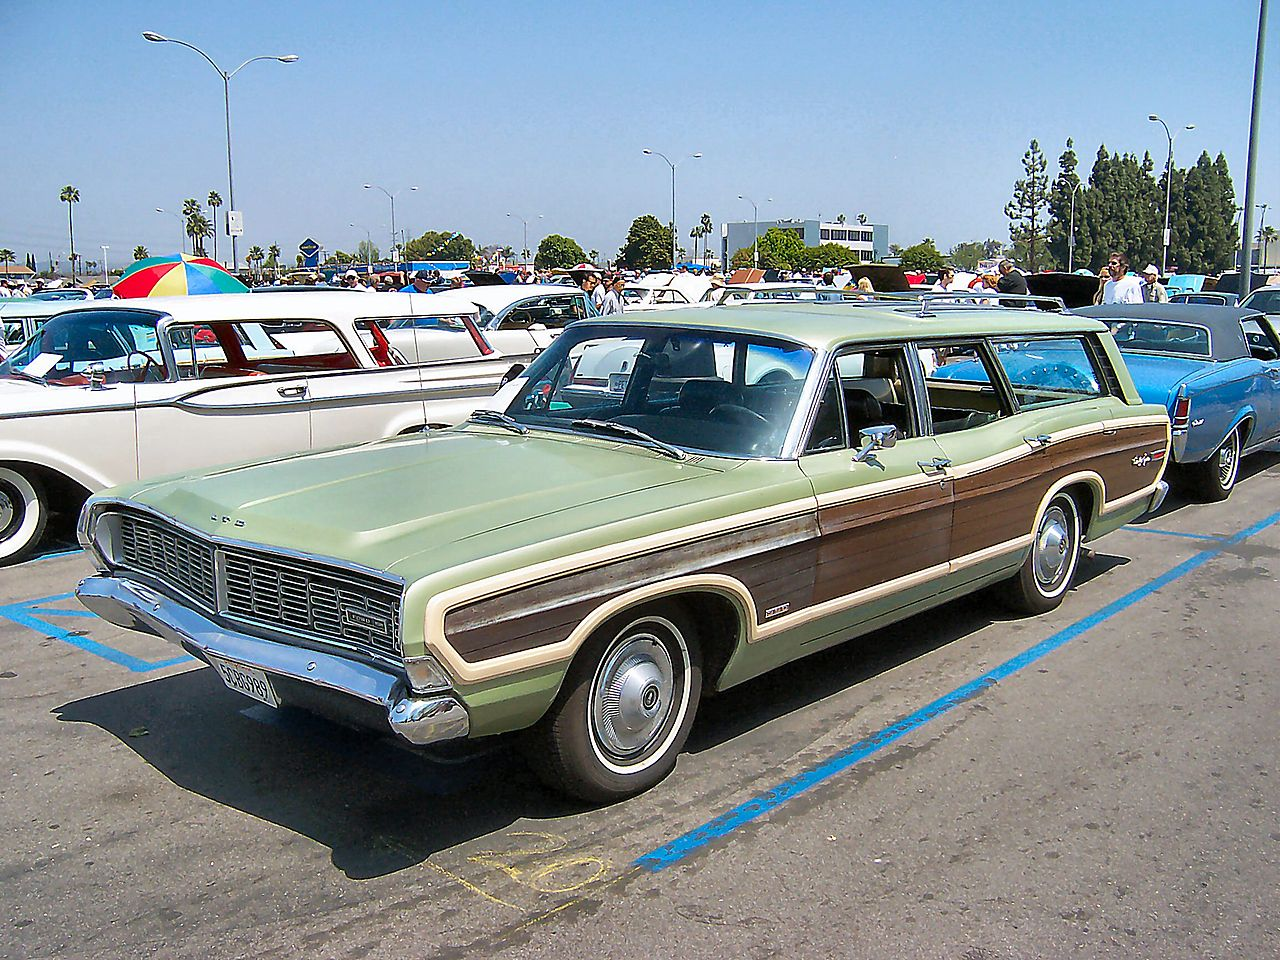 68 Ford Ltd Station Wagon